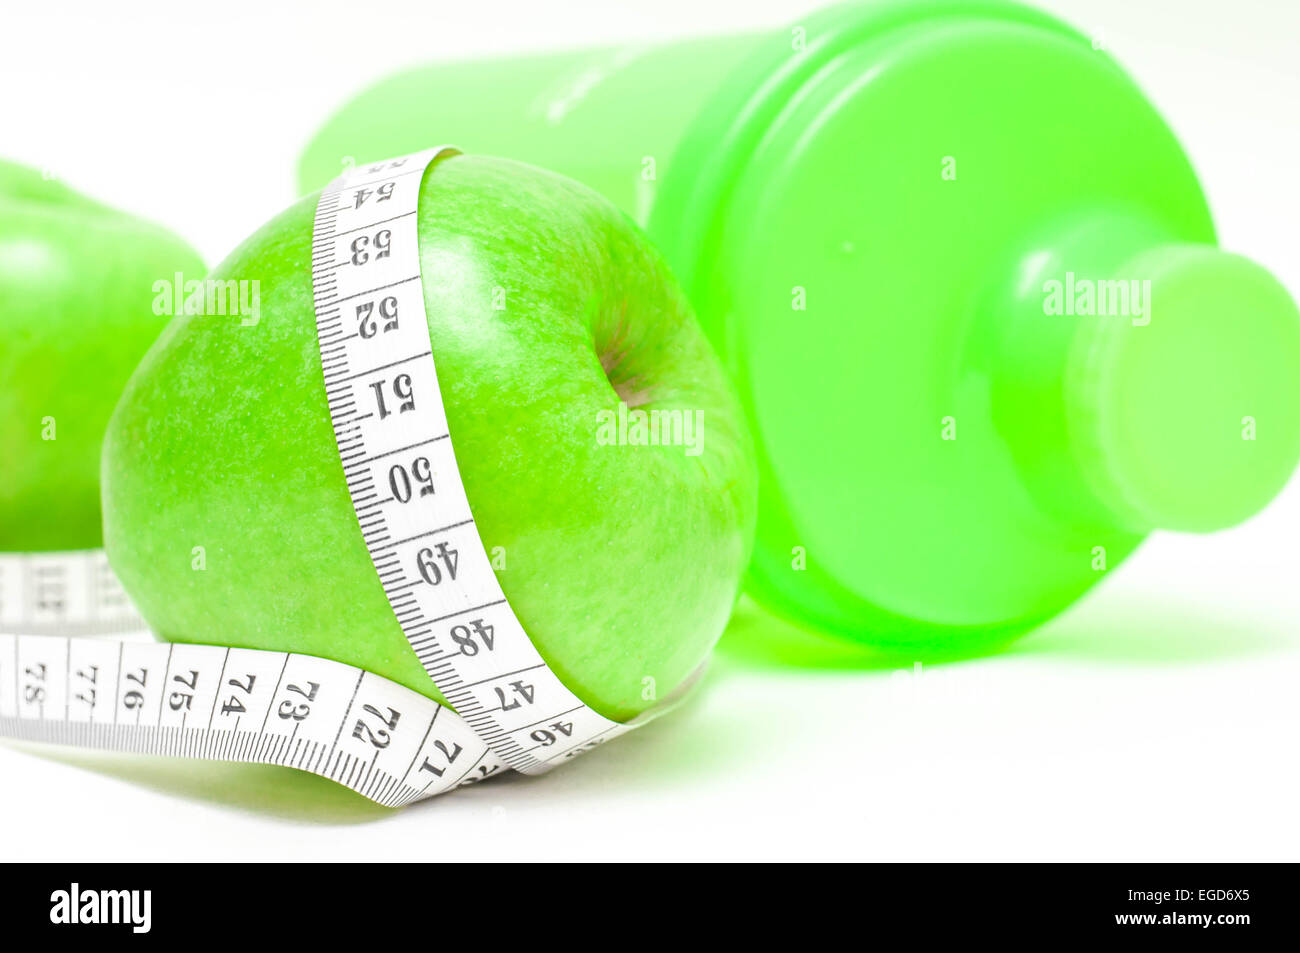 Diet concept   Healthy Living - nutrition and exercising